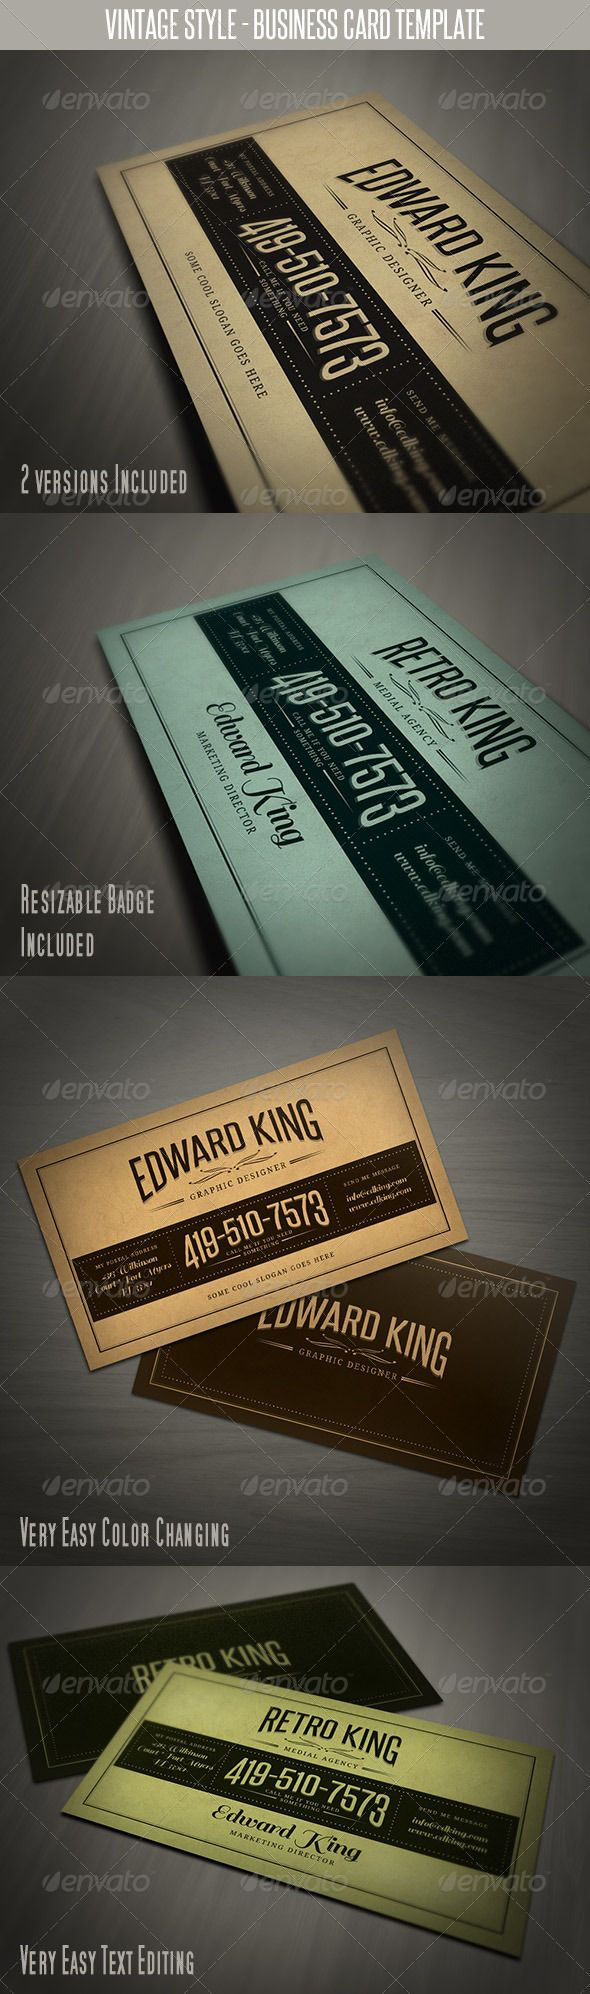 Vintage Style Business Card Template | Card templates, Business ...